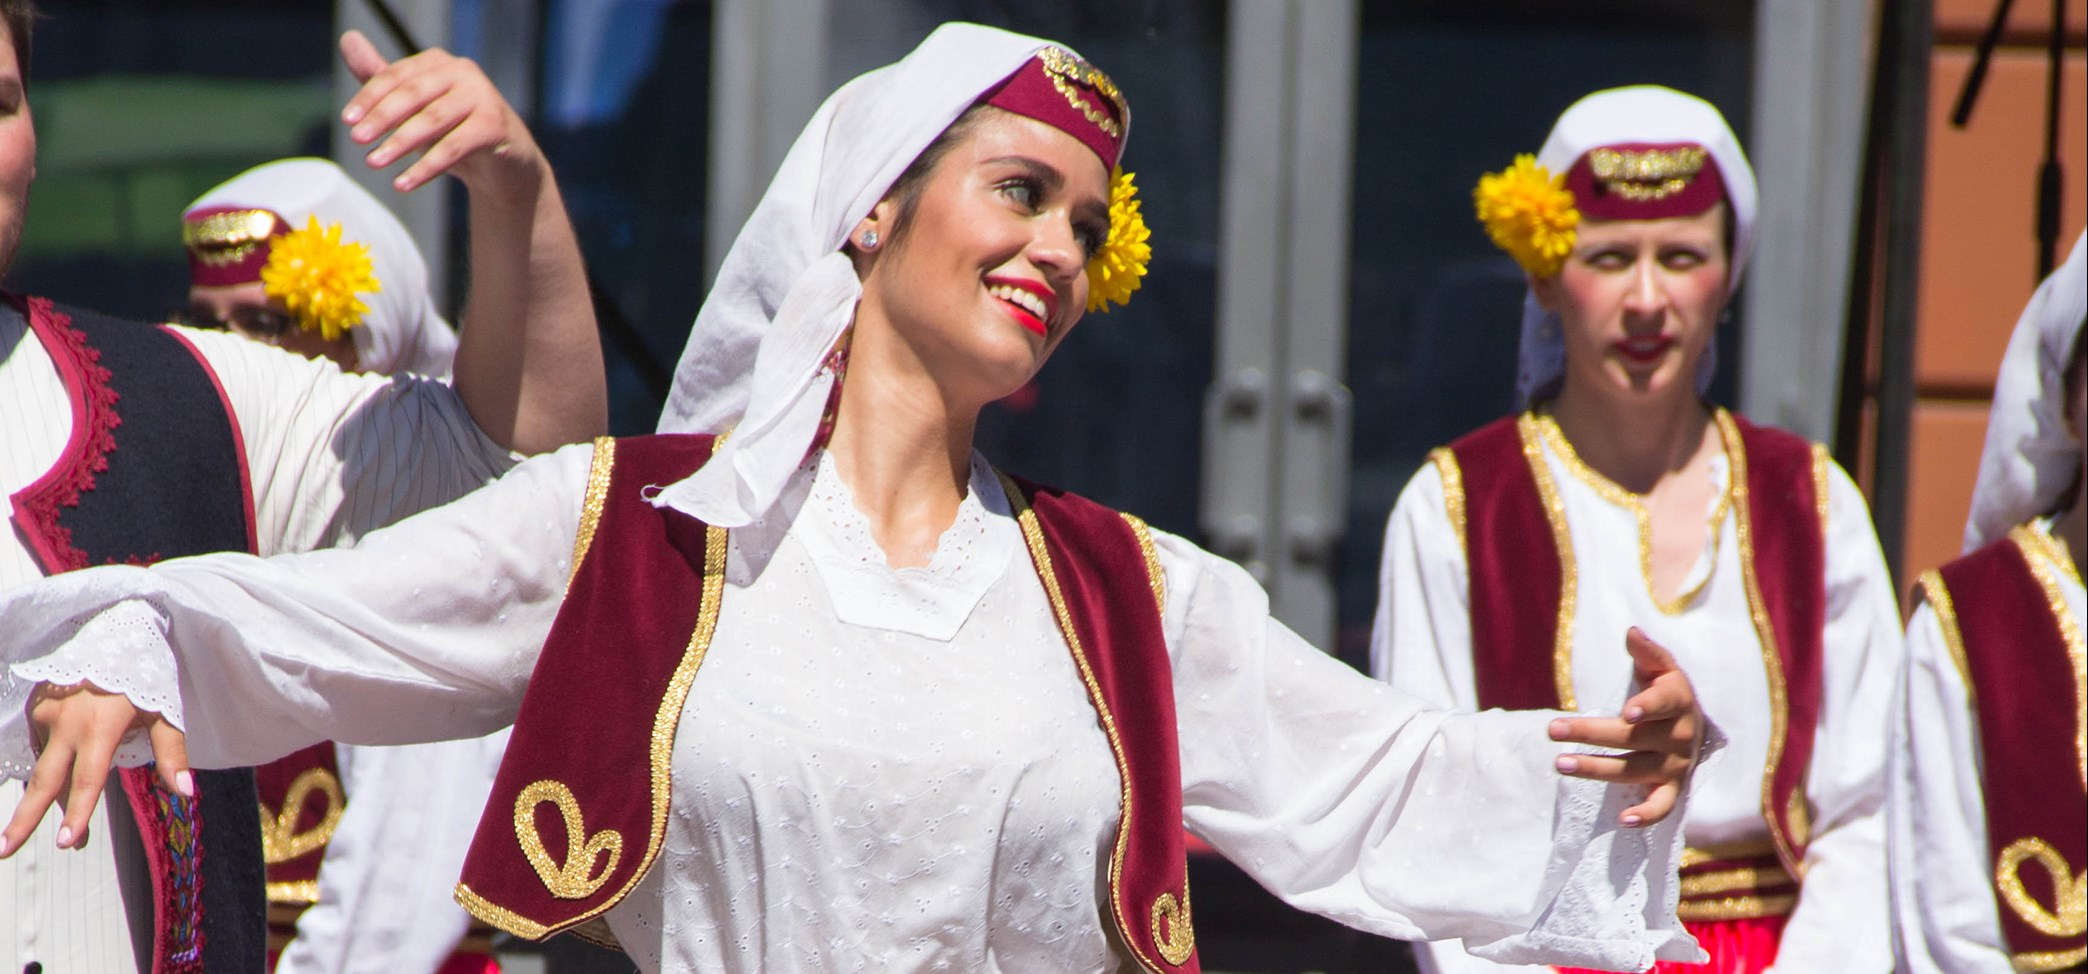 Female Basque dancers